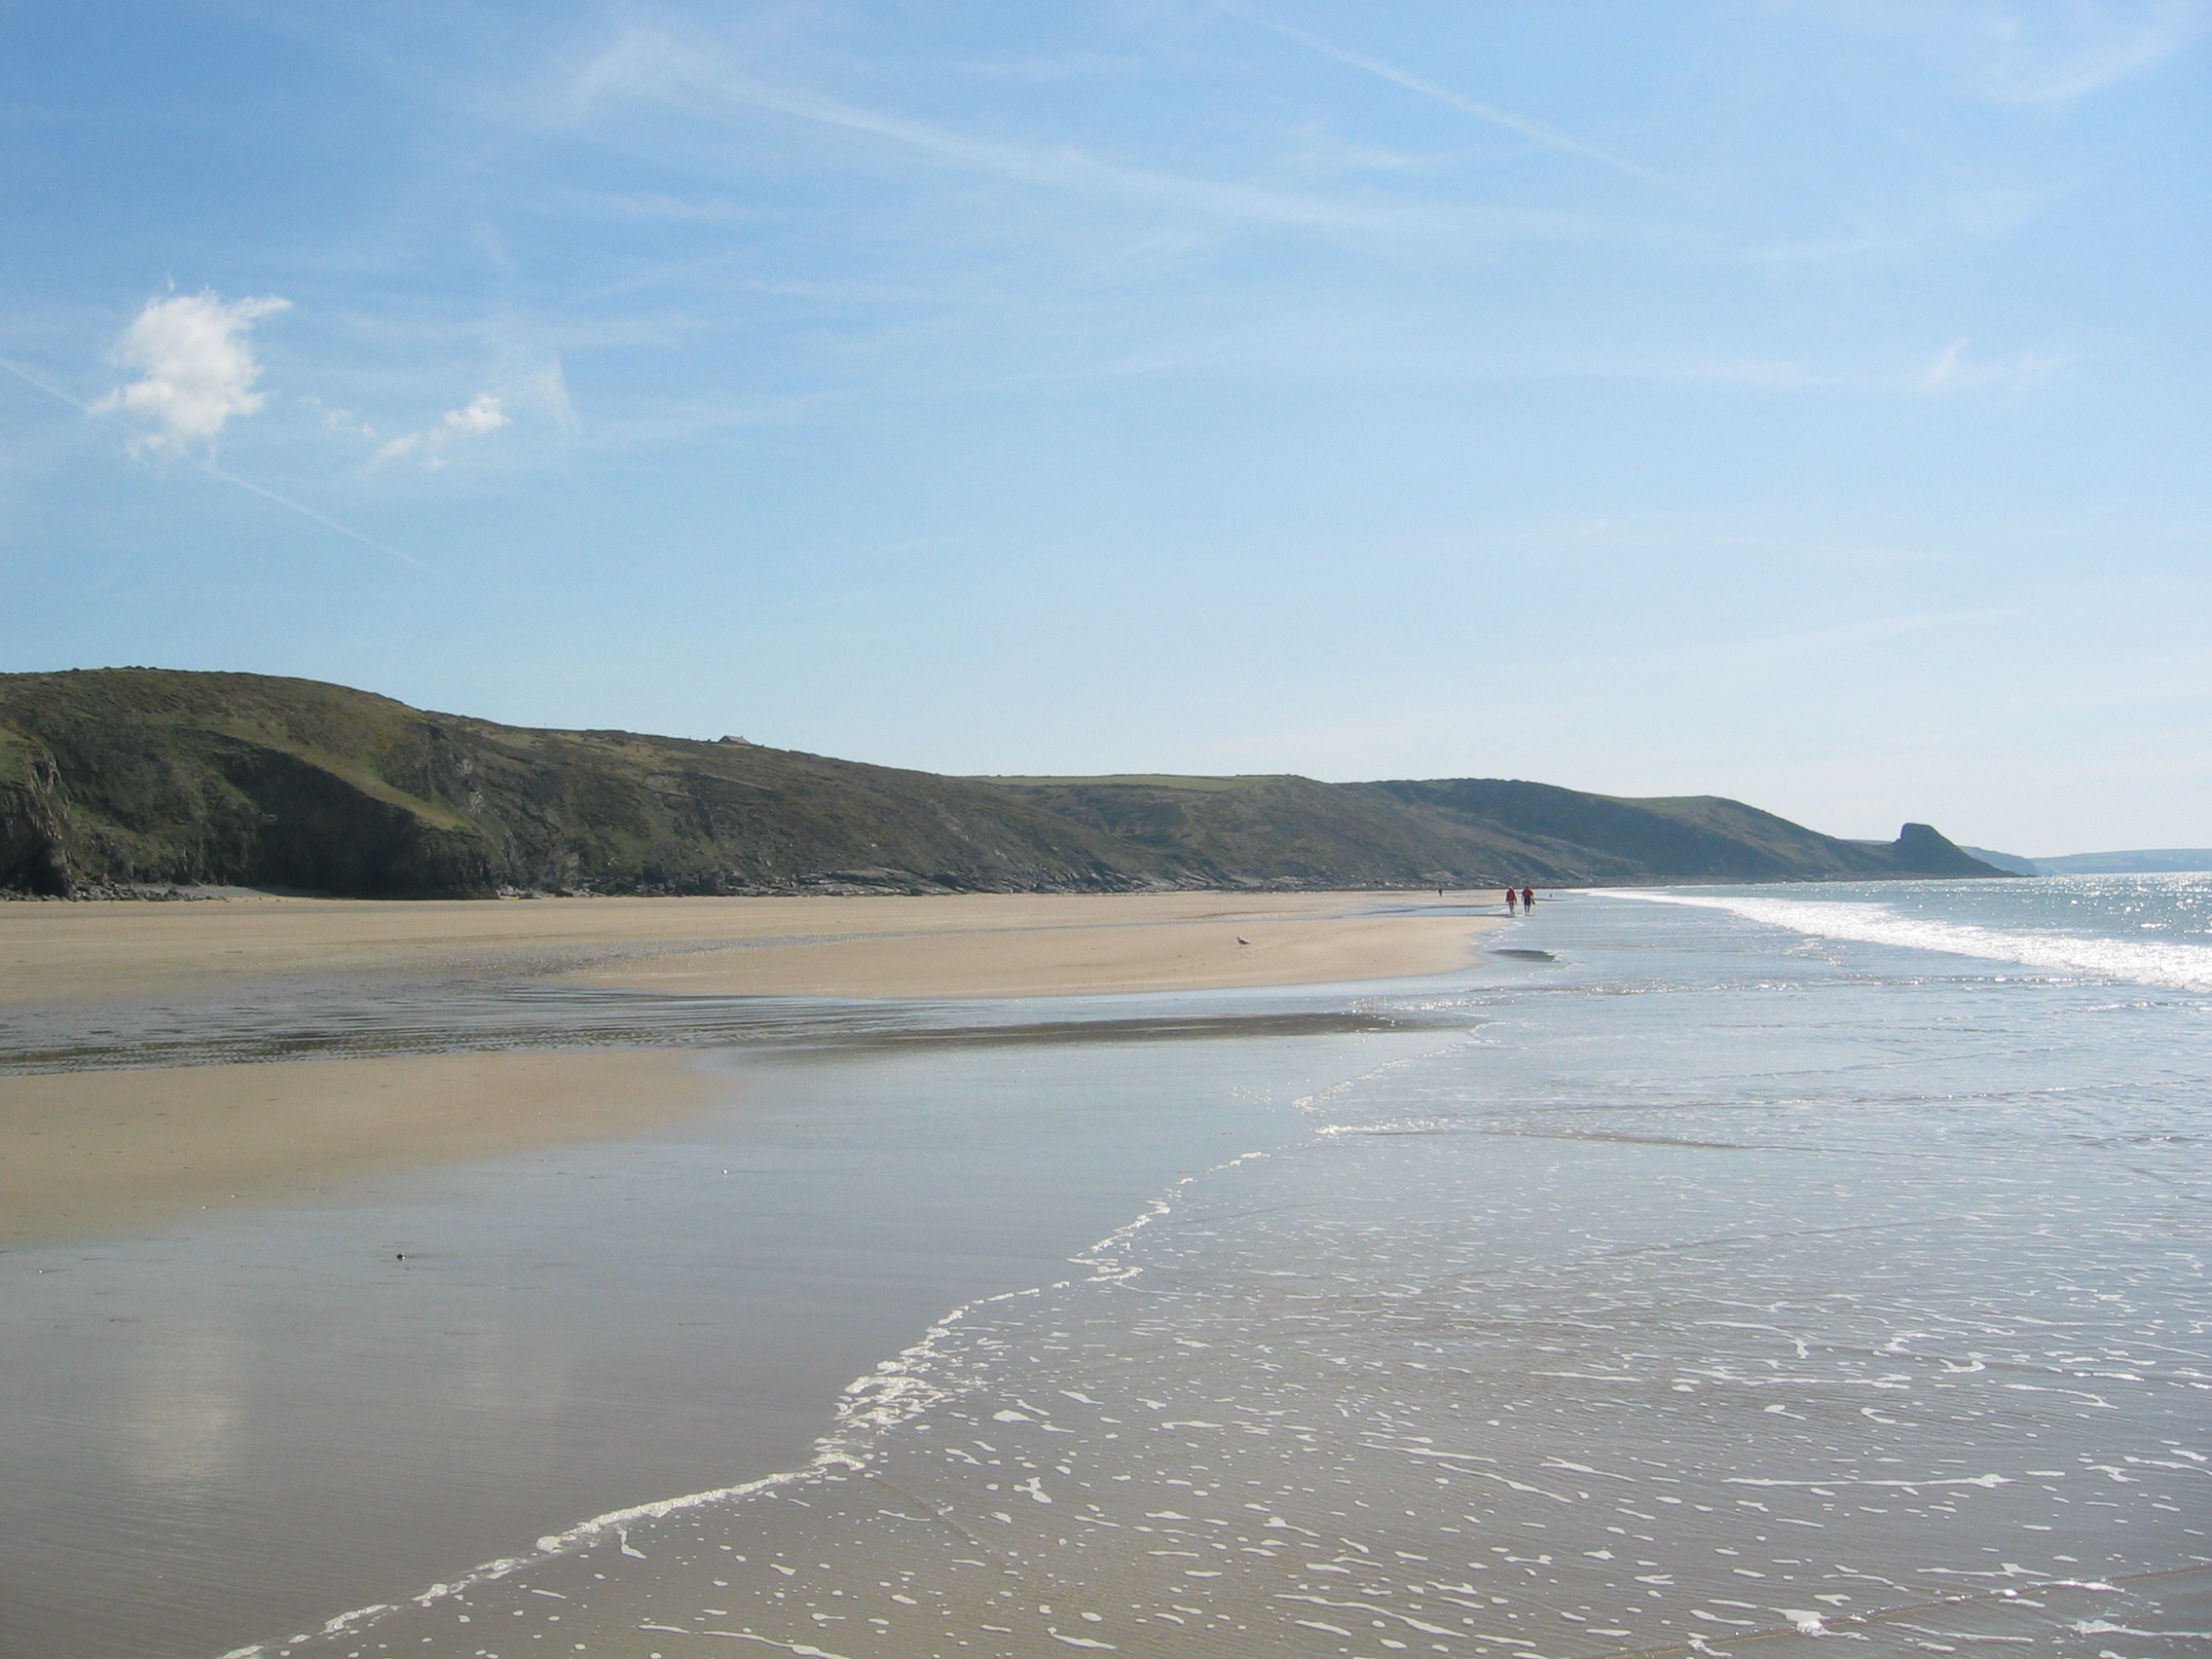 Taking a stroll on Newgale beach